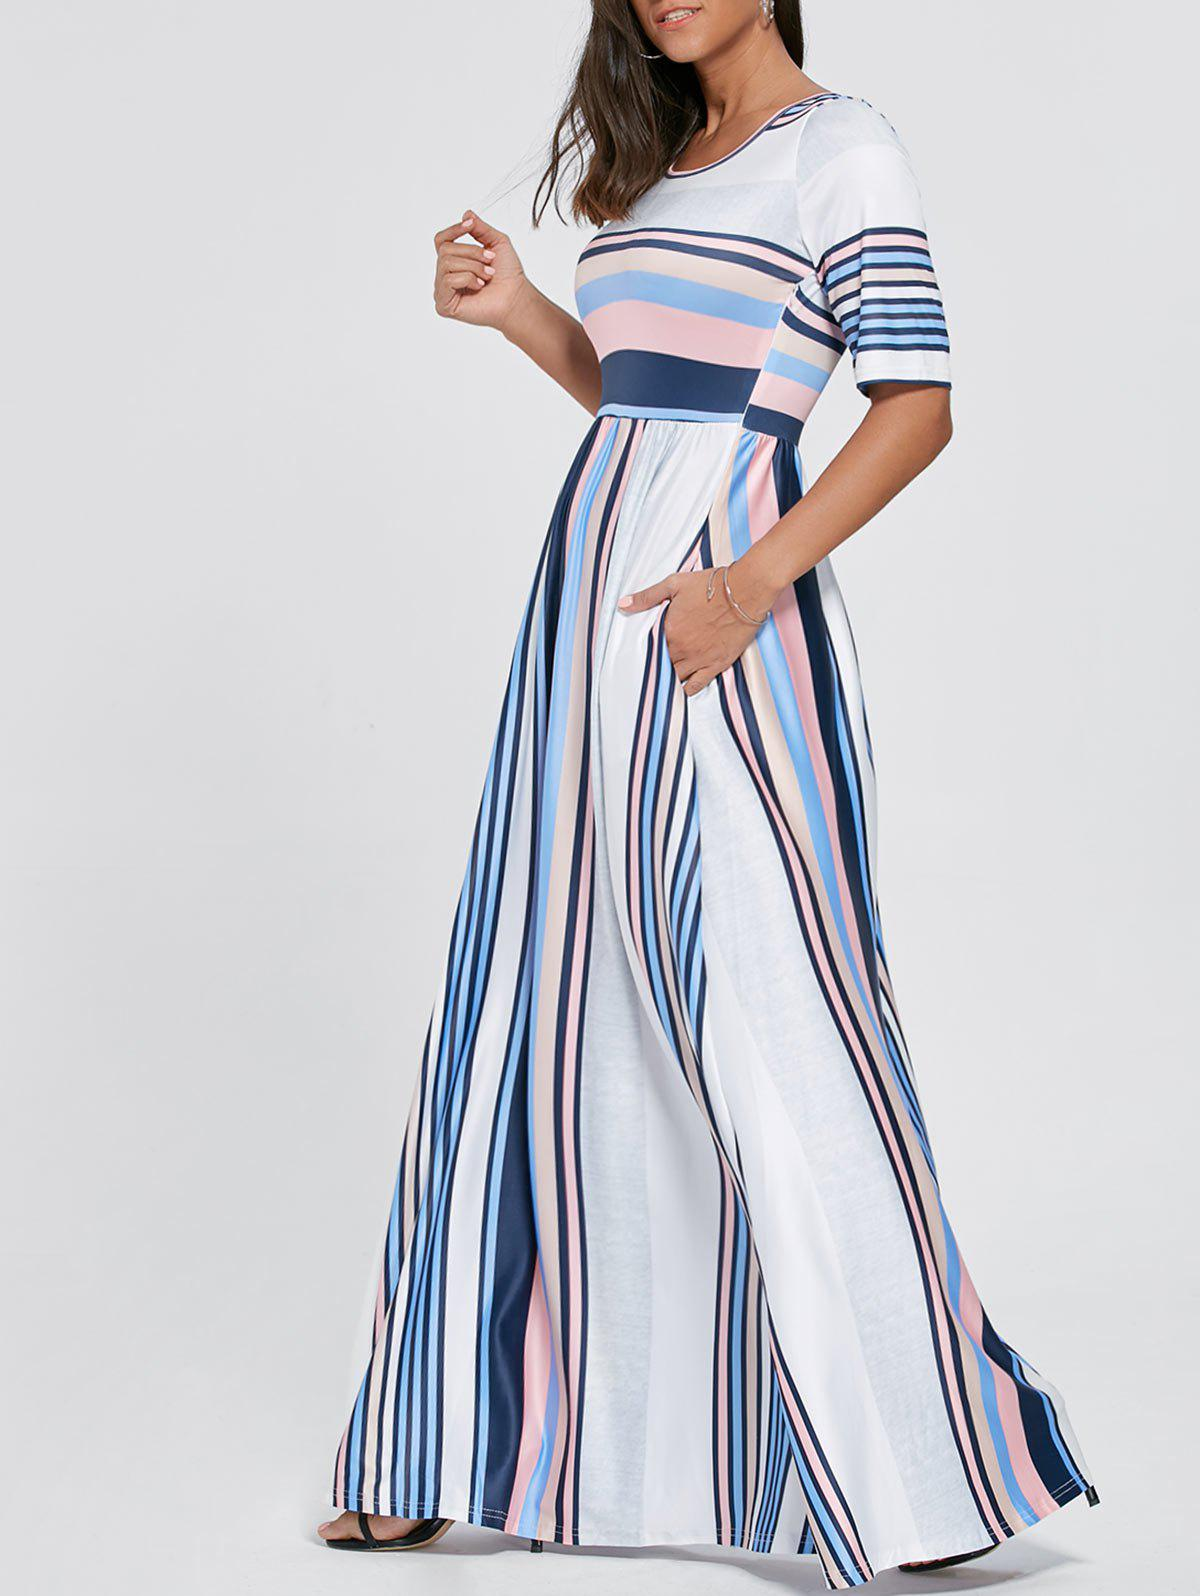 Color Block Striped Tee Shirt Maxi DressWOMEN<br><br>Size: XL; Color: BLUE; Style: Casual; Material: Polyester,Spandex; Silhouette: A-Line; Dresses Length: Floor-Length; Neckline: Scoop Neck; Sleeve Length: Half Sleeves; Pattern Type: Striped; With Belt: No; Season: Fall,Spring; Weight: 0.5000kg; Package Contents: 1 x Dress;